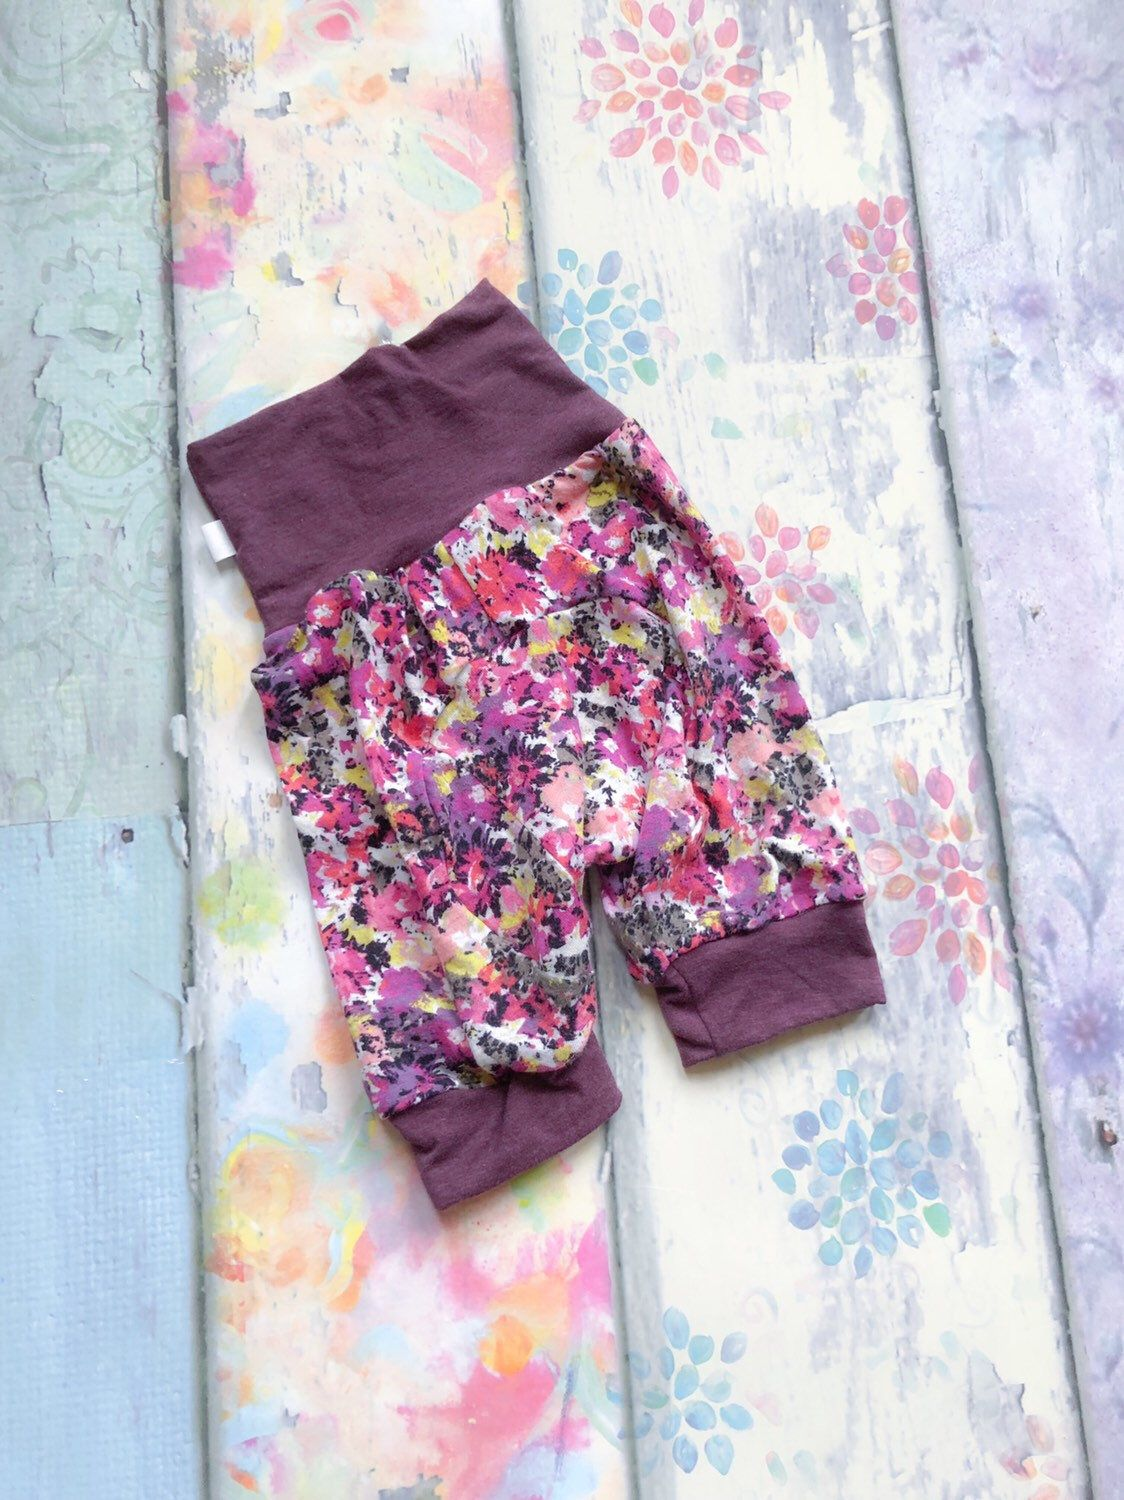 Floral Girls Large Shortiloones   1-4yrs   Grow With Me Shorts, Butt Circle Shorts, Cloth Diaper Shorts, Short Maxiloones, Toddler Shorts #toddlershorts